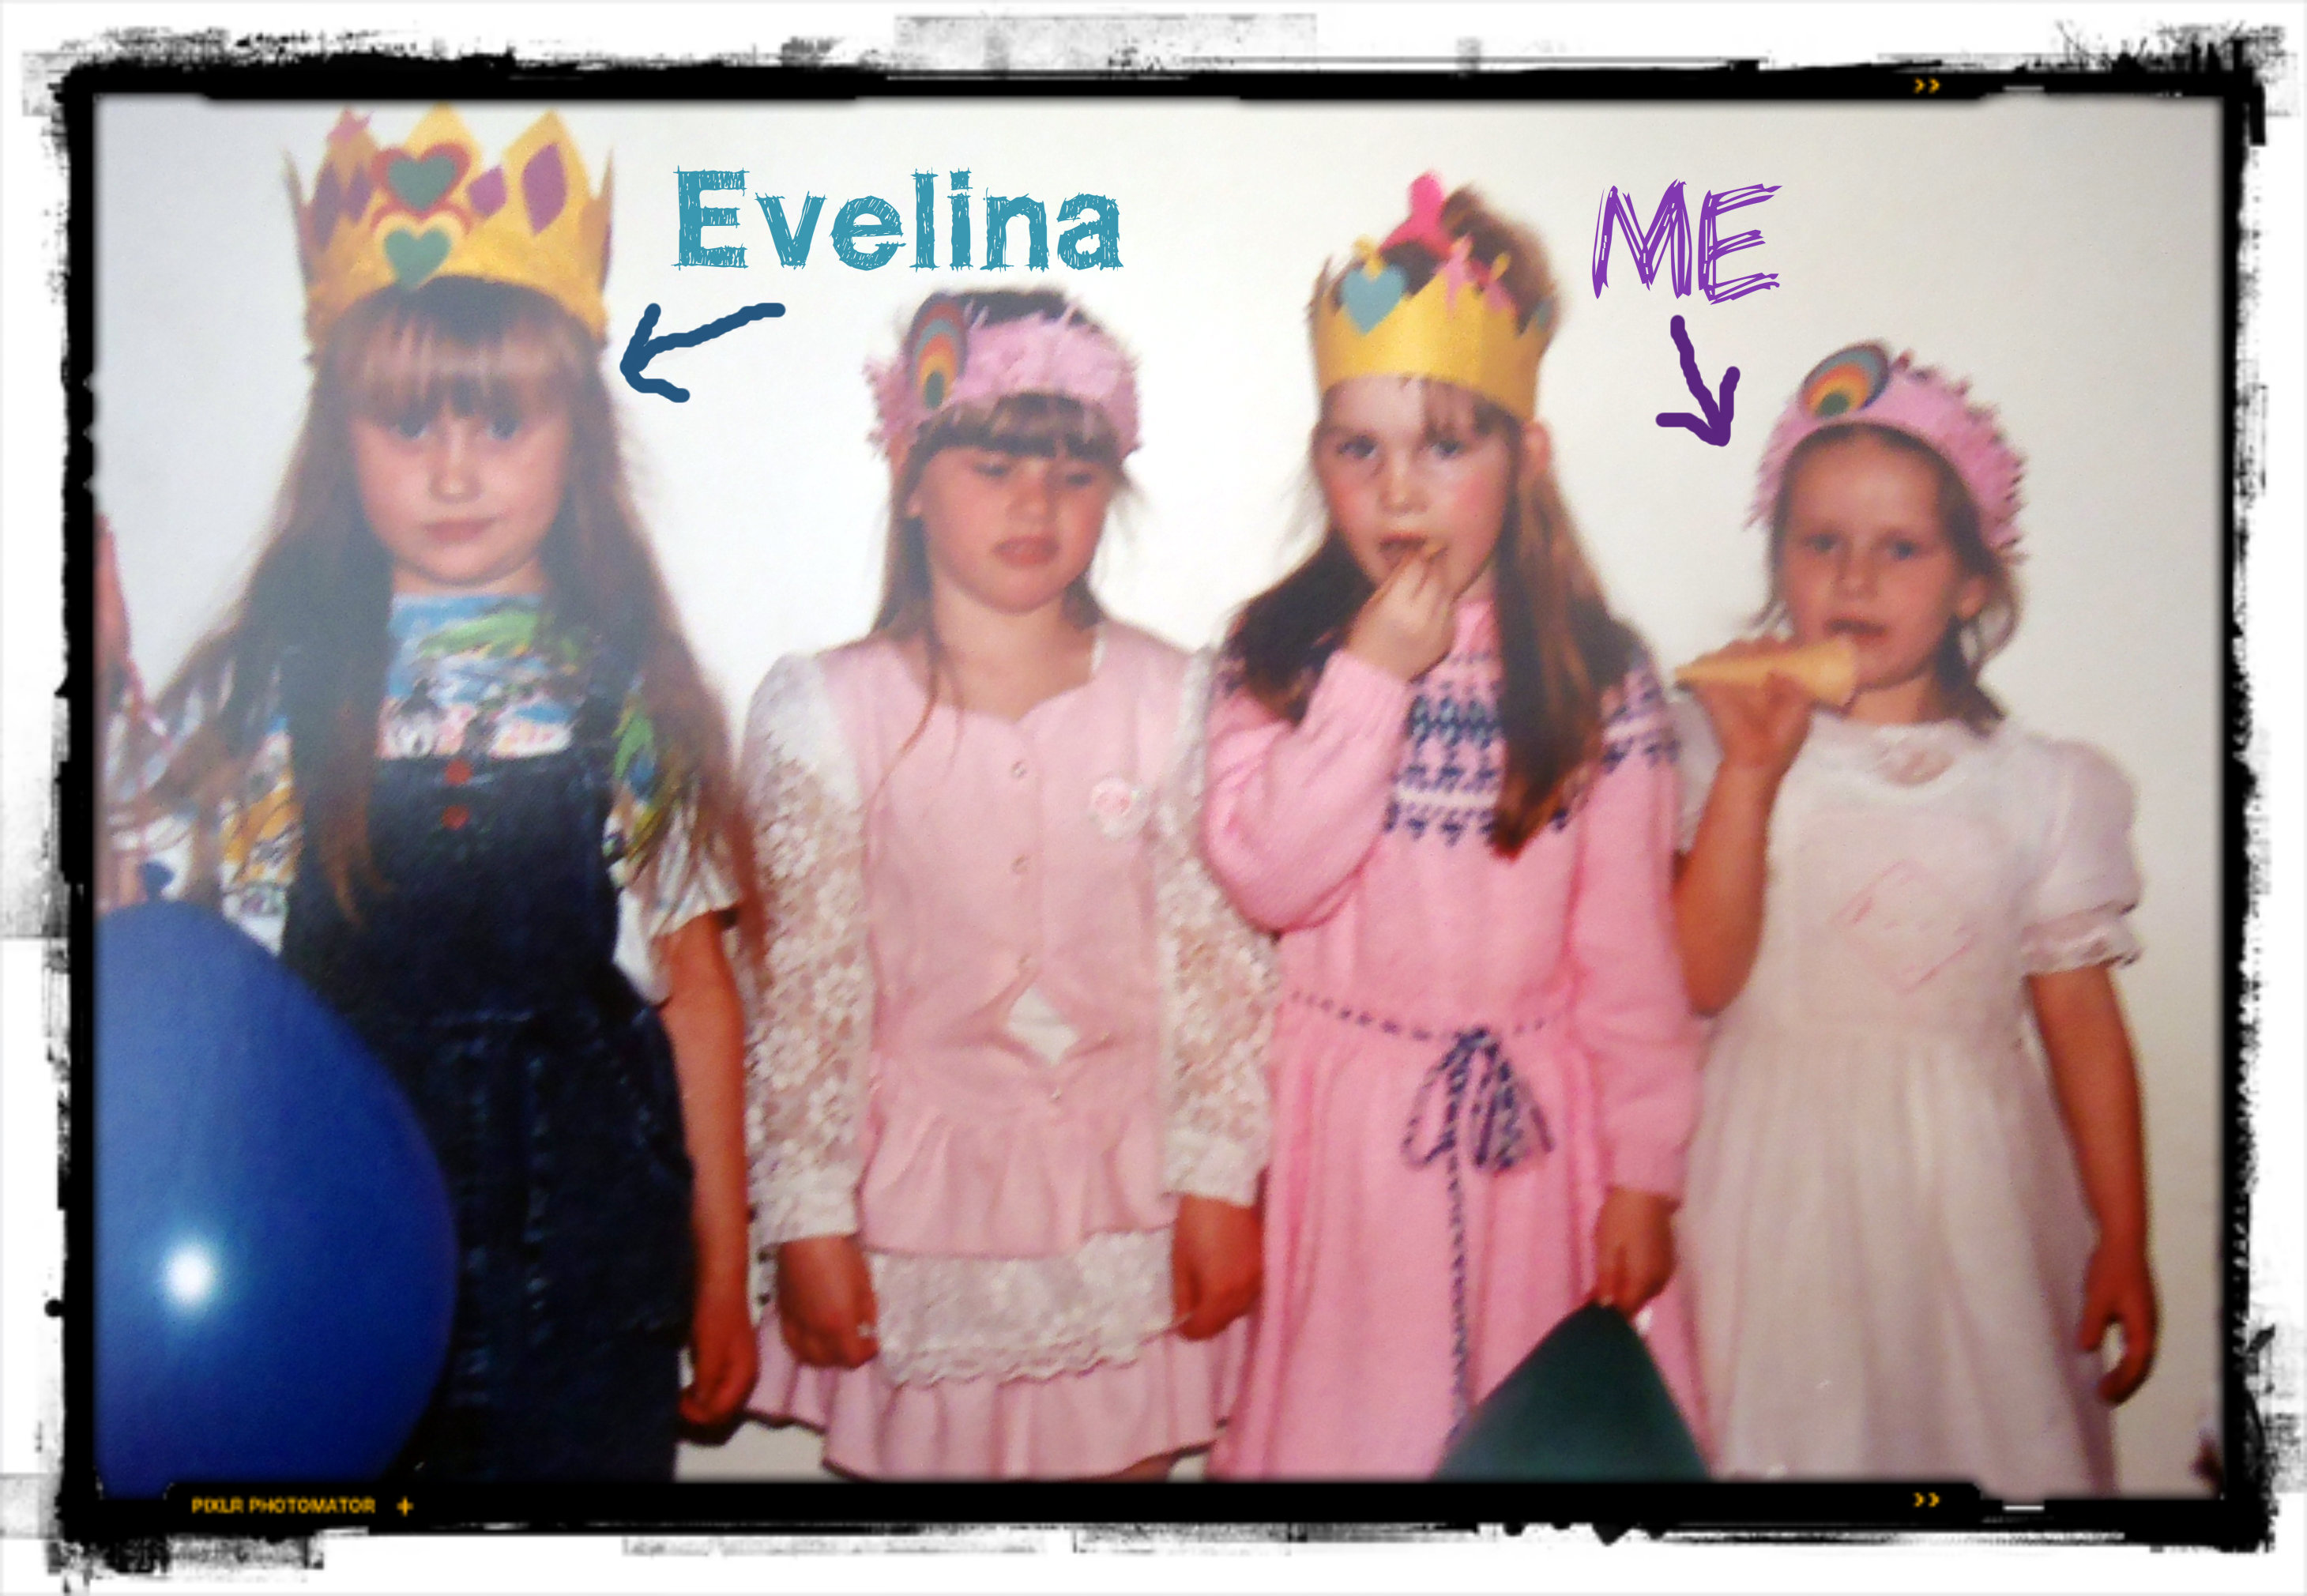 My 5th Birthday Party. Those crowns that we're all wearing...we made those at the party lol